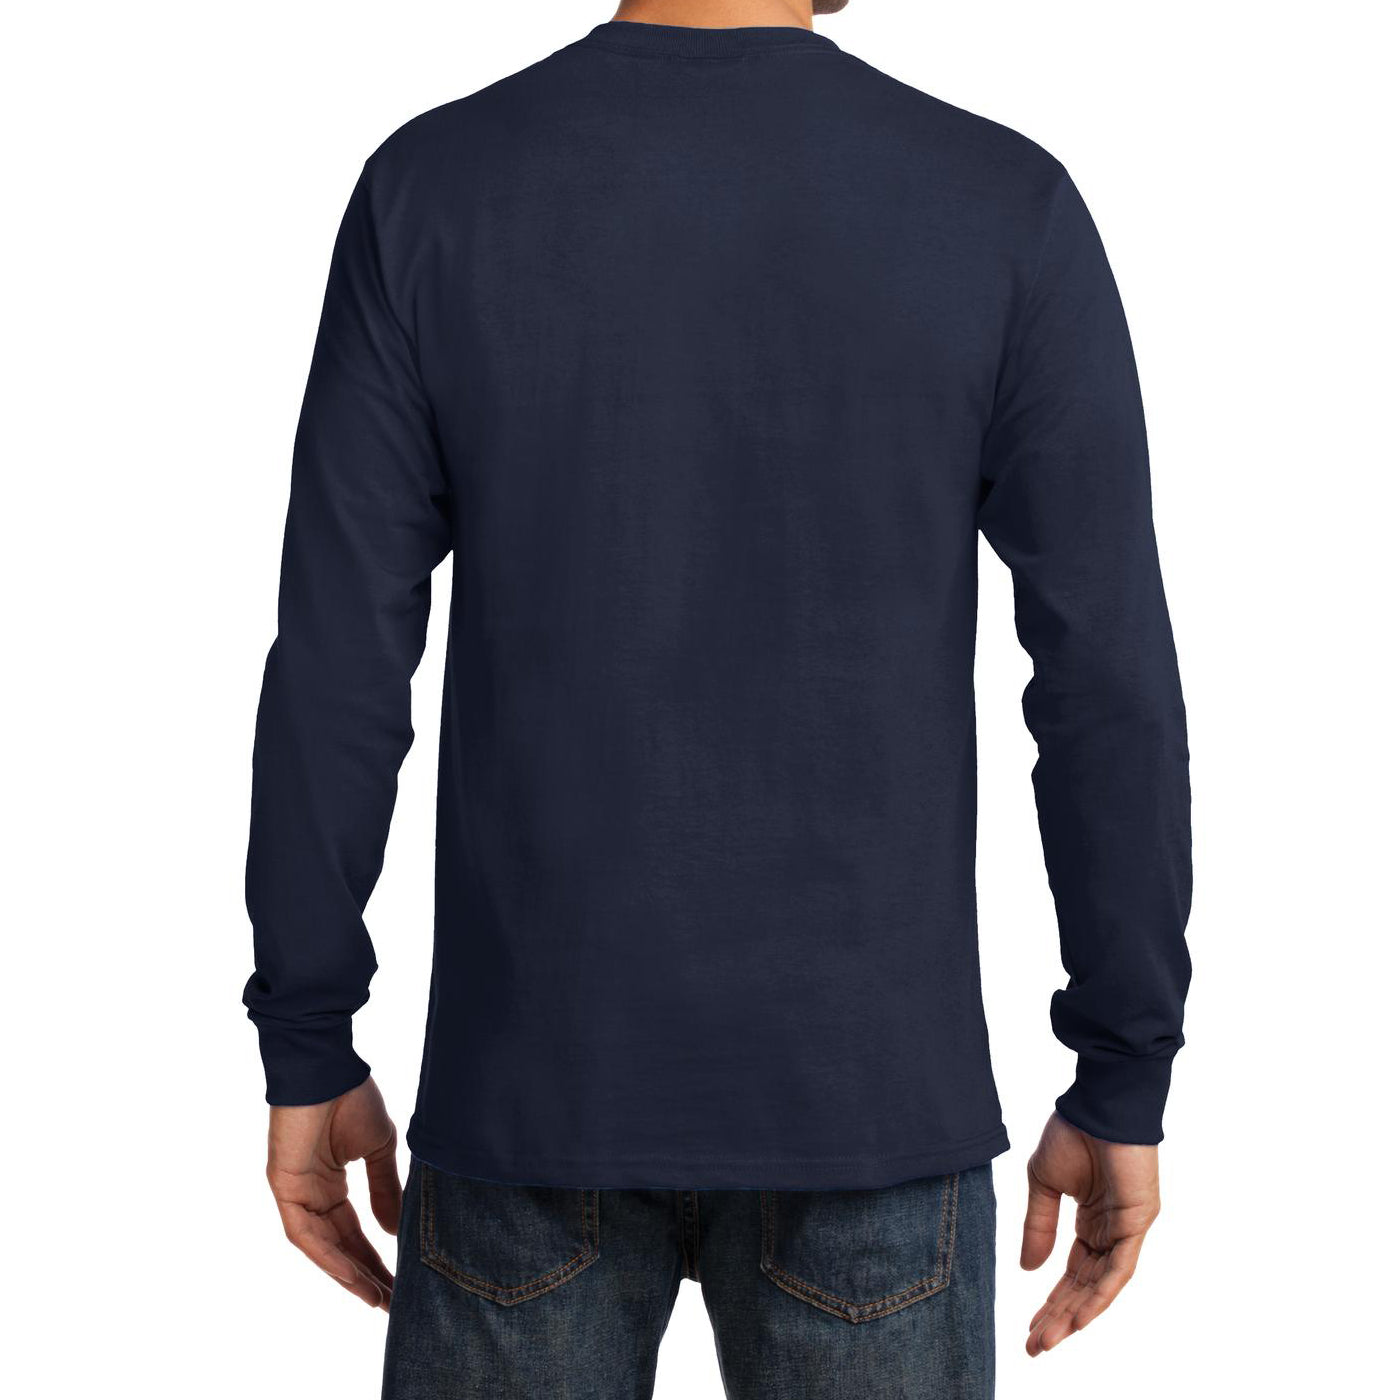 Men's Long Sleeve Essential Tee - Deep Navy - Back